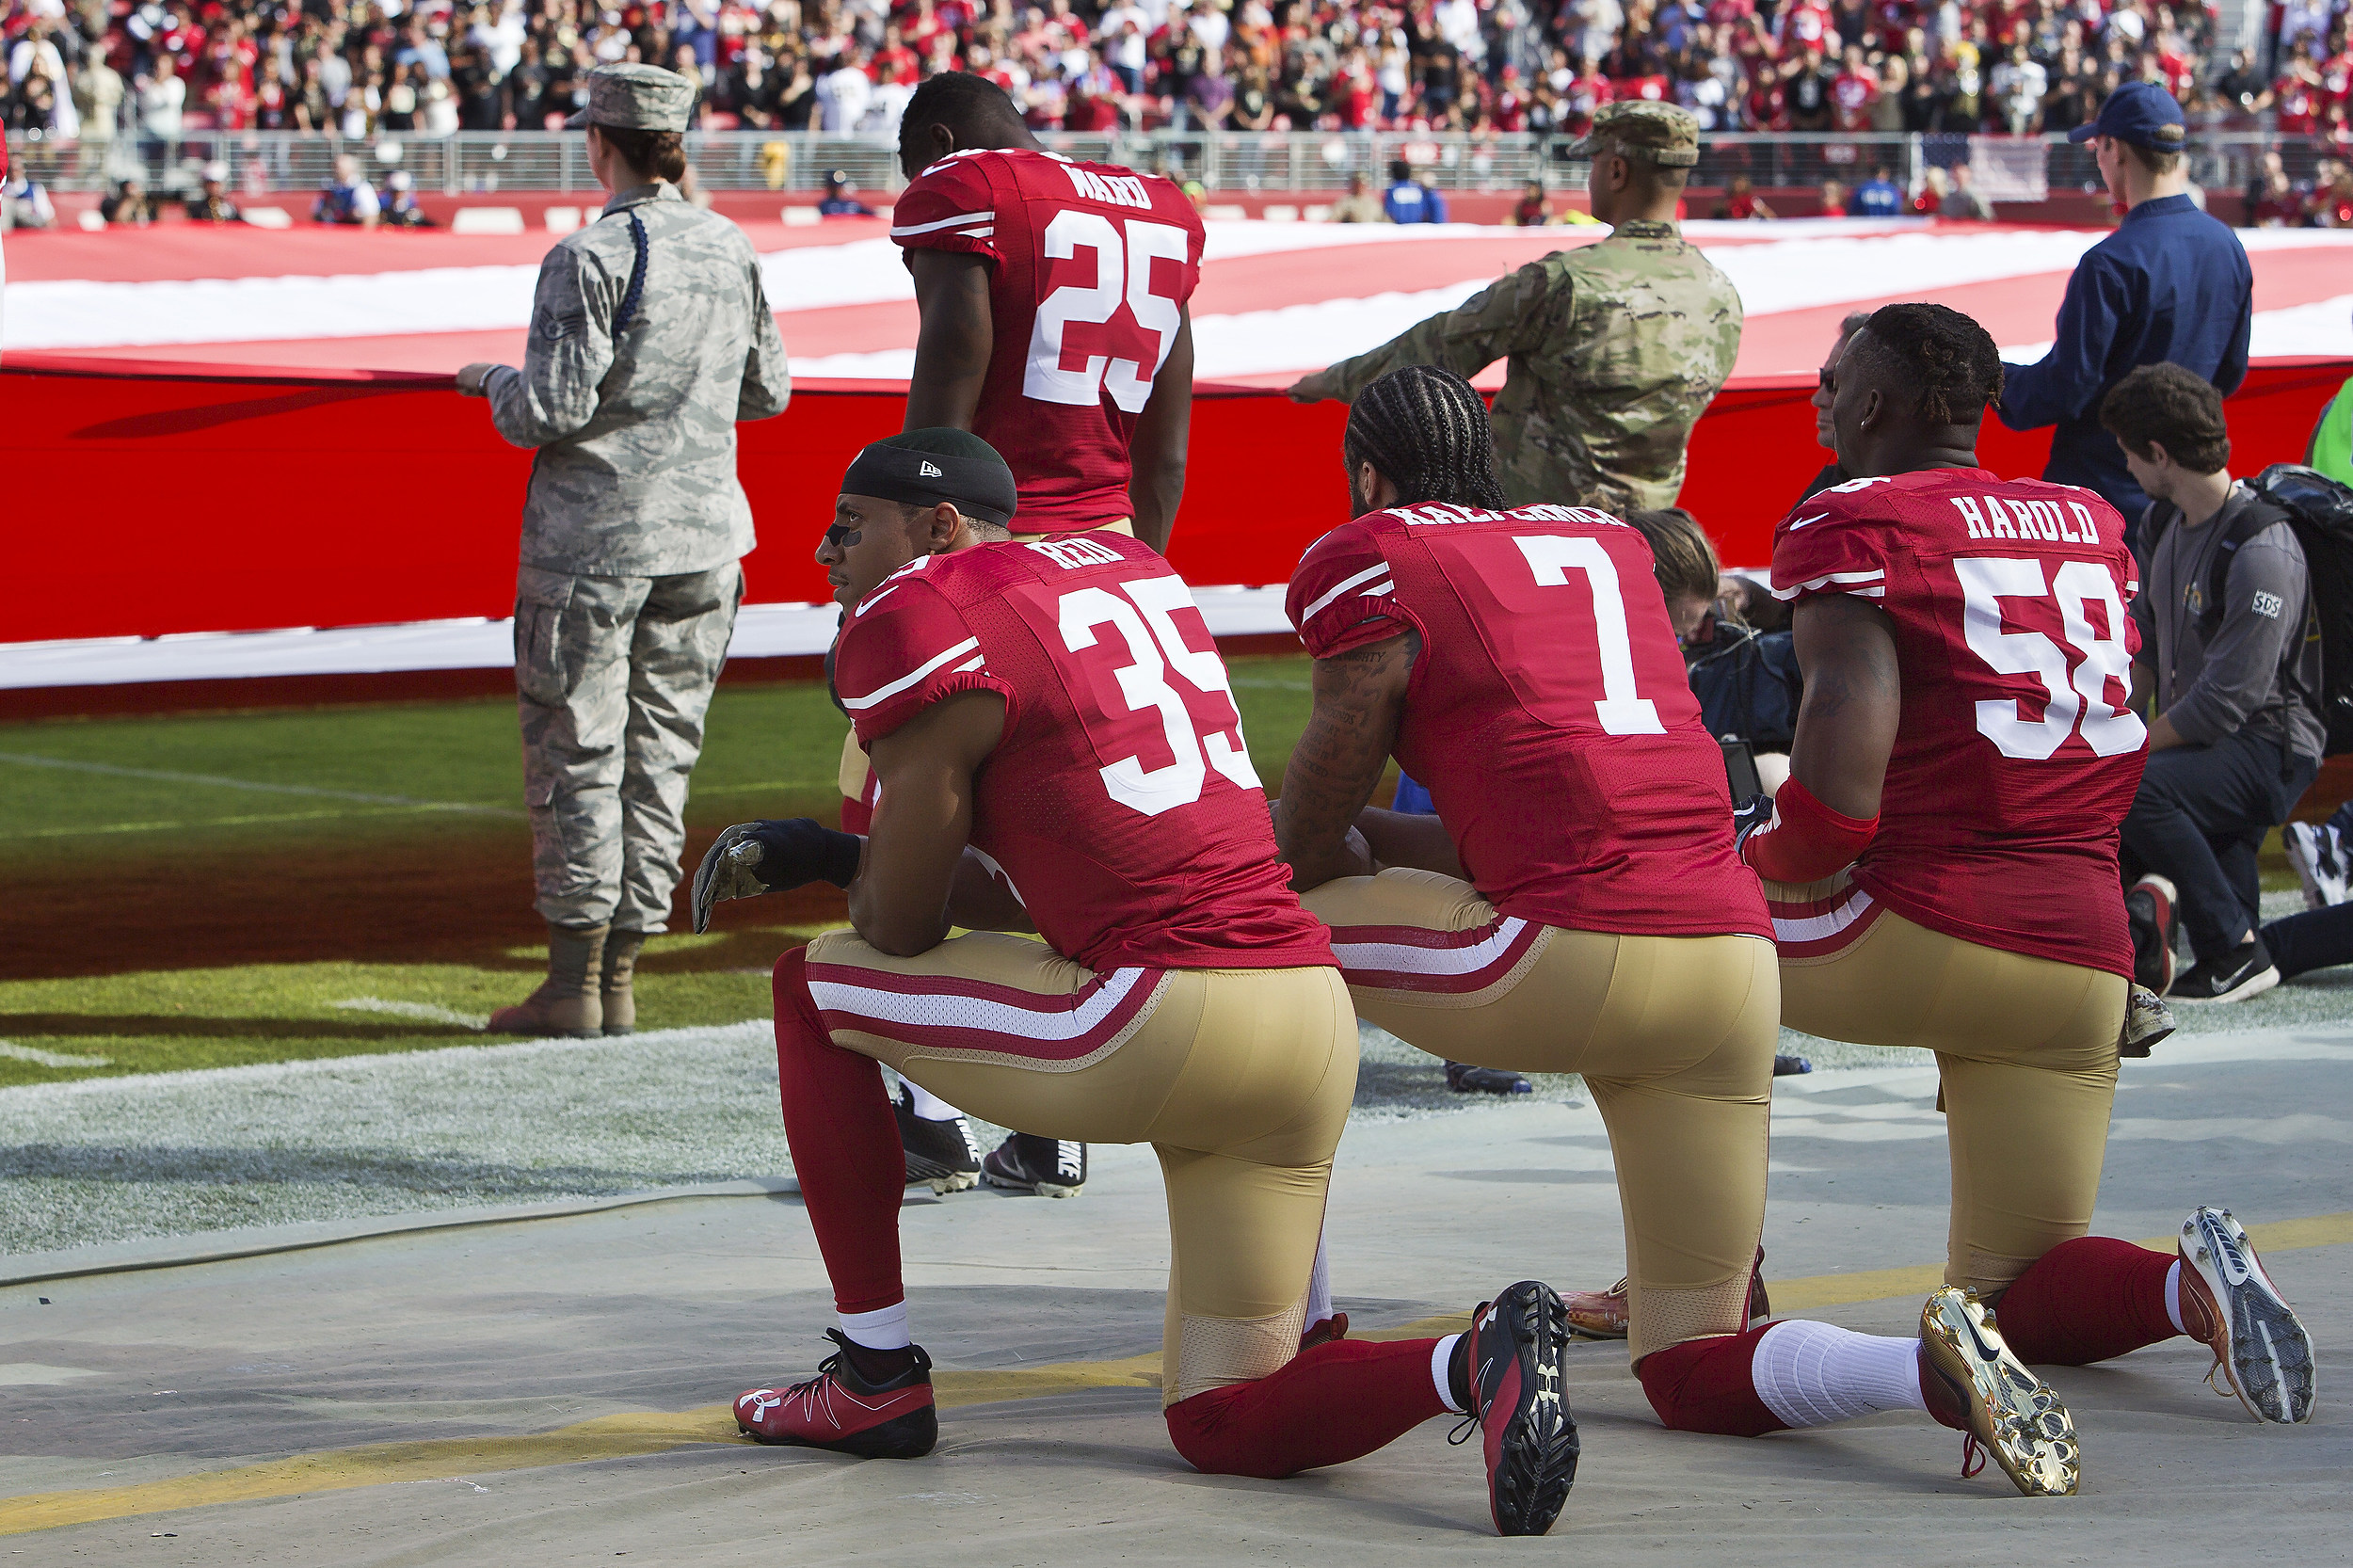 VERIFY: Are NFL football players required to stand for the National Anthem?